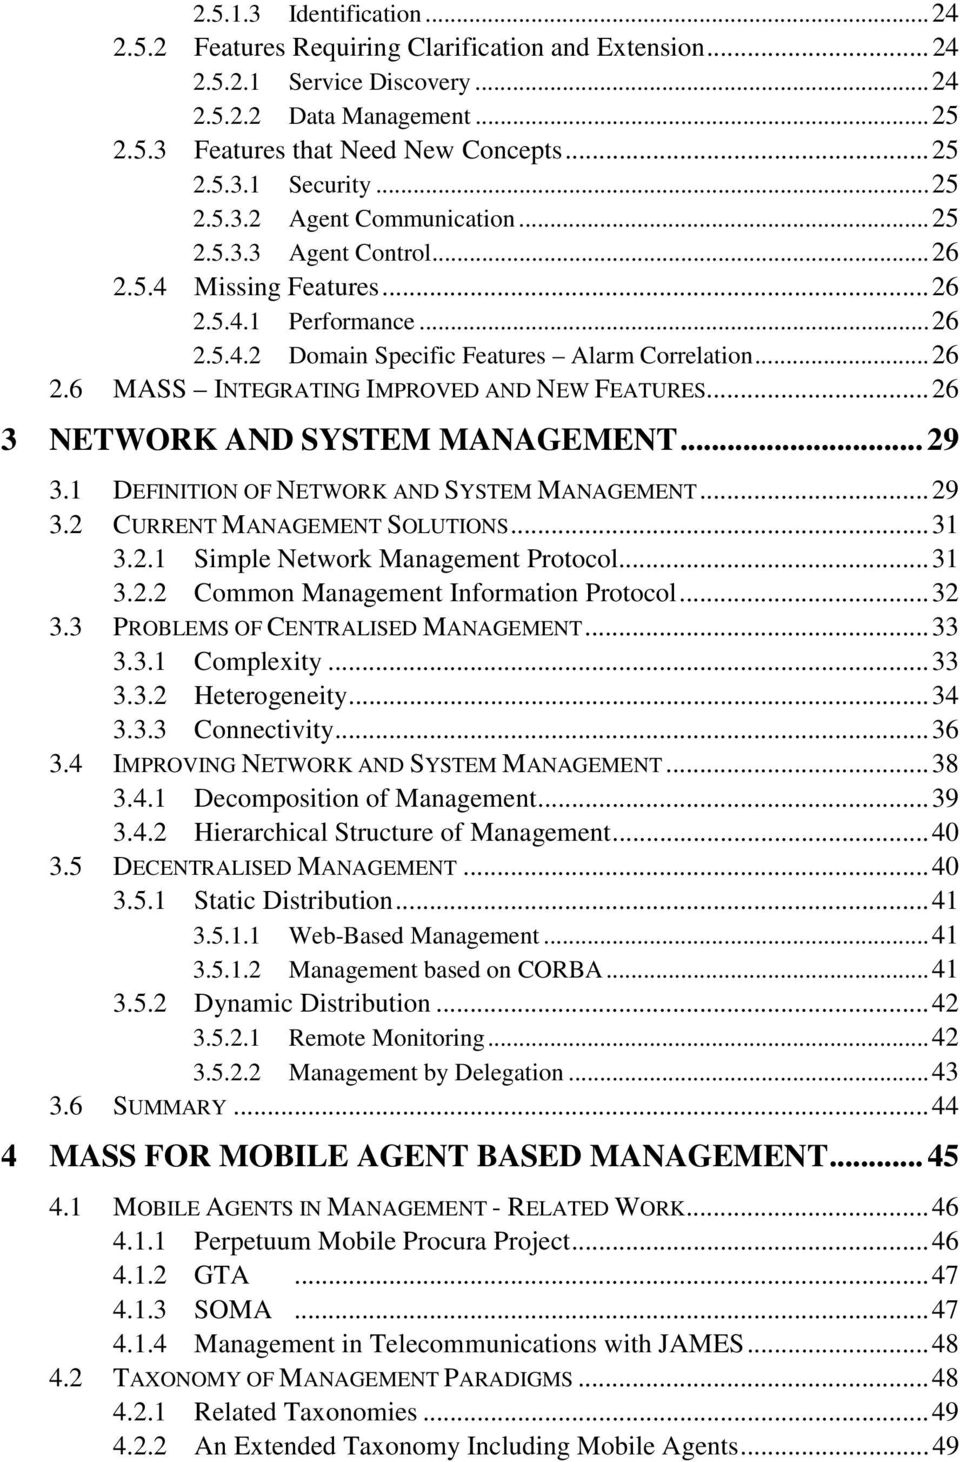 ..26 3 NETWORK AND SYSTEM MANAGEMENT... 29 3.1 DEFINITION OF NETWORK AND SYSTEM MANAGEMENT...29 3.2 CURRENT MANAGEMENT SOLUTIONS...31 3.2.1 Simple Network Management Protocol...31 3.2.2 Common Management Information Protocol.